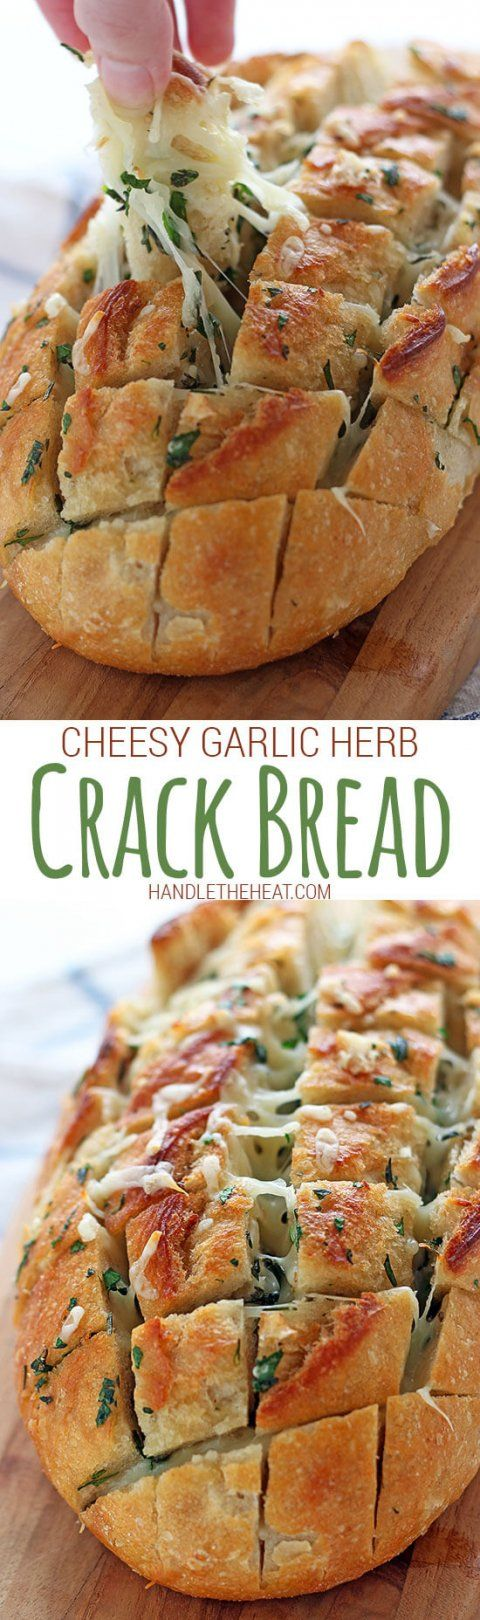 Cheesy, buttery, and flavorful...this recipe is definitely a crowd pleaser.